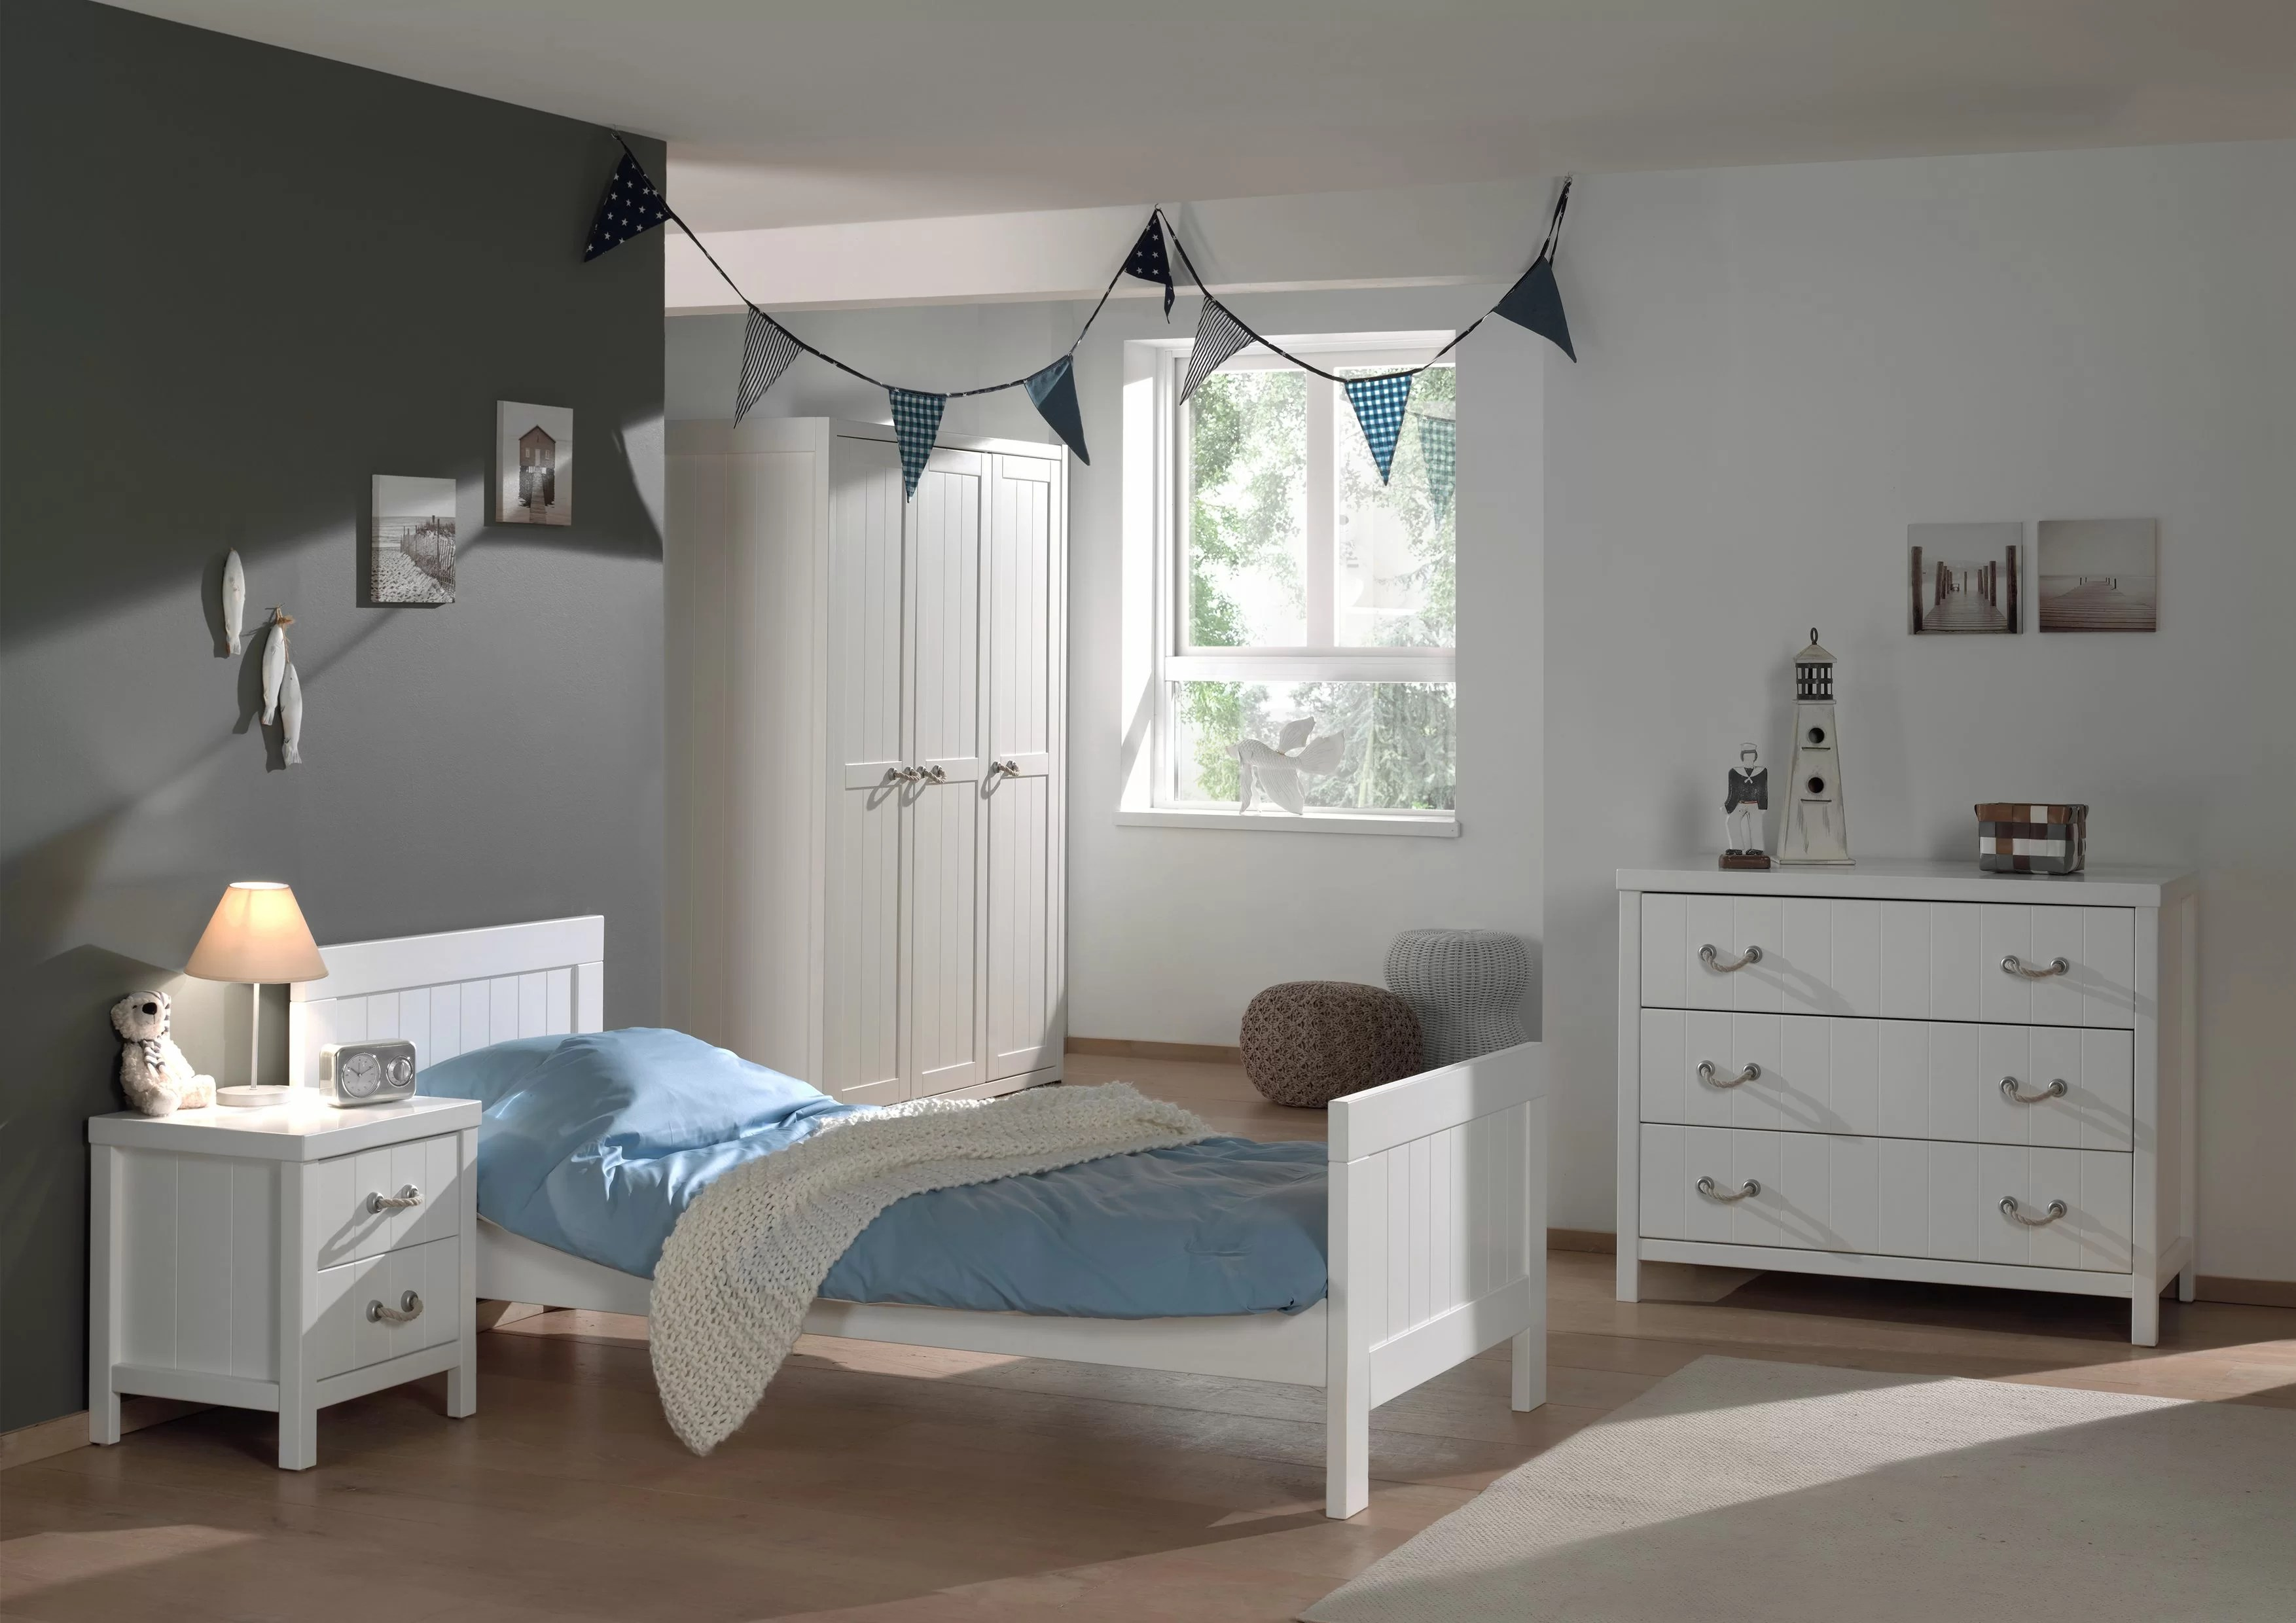 Schlafzimmer Set 4 Tlg. Set Kiefer Massiv Weiß Lava Harriet Bee 4-tlg. Schlafzimmer-set Anthony | Wayfair.de